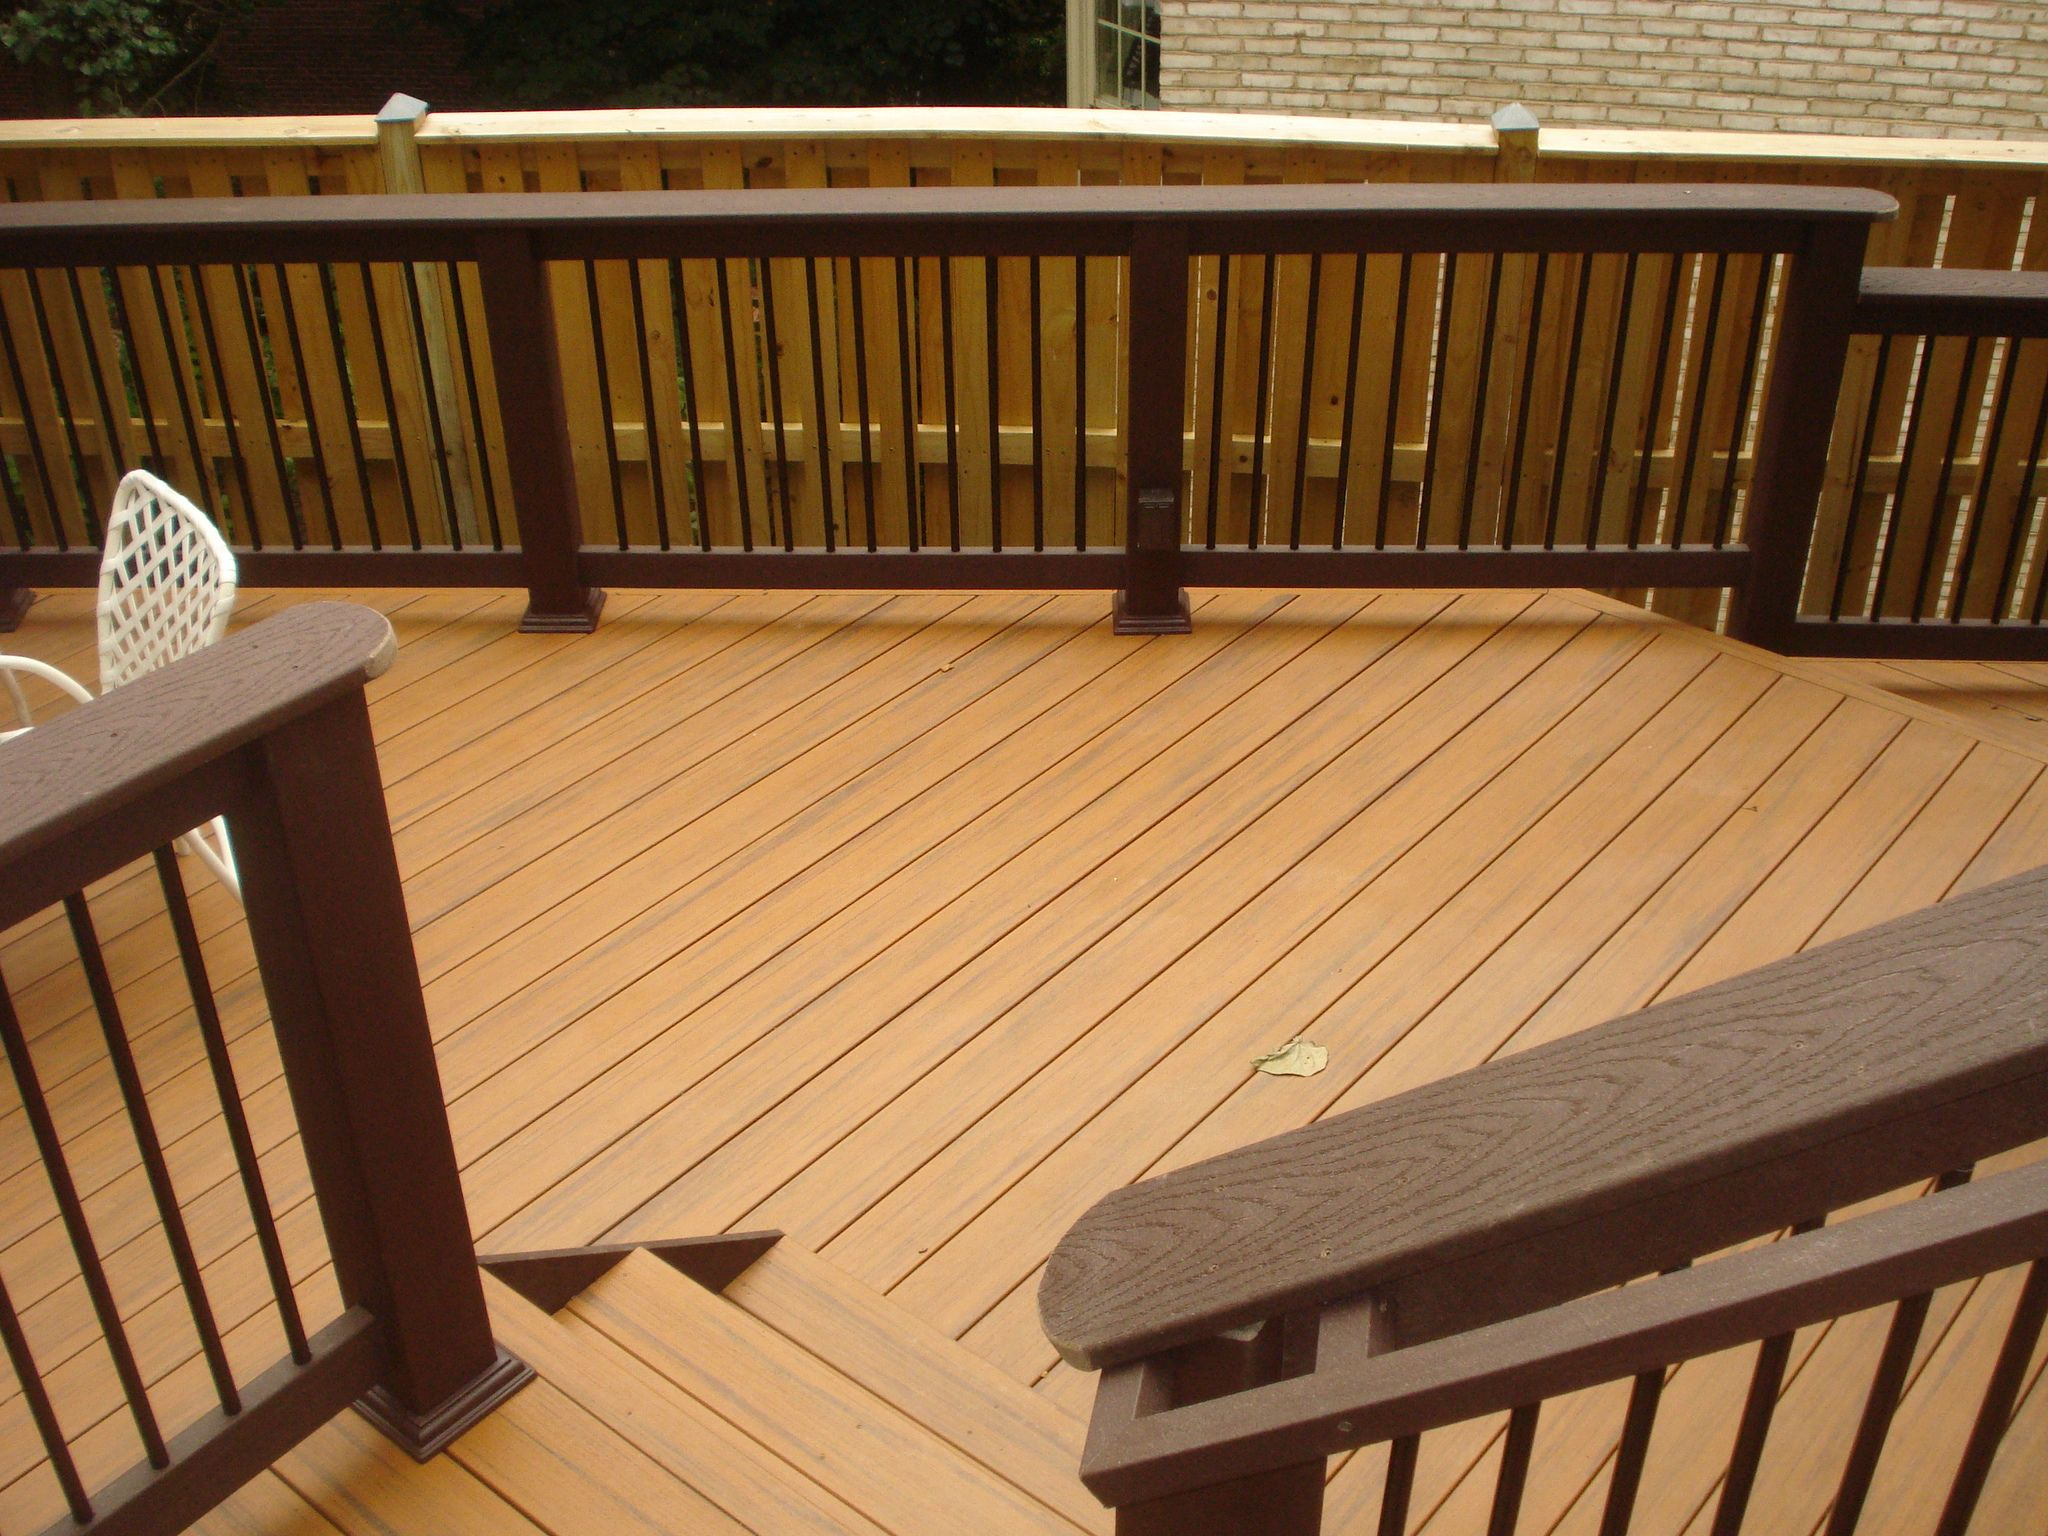 MD Trex Woodland Brown Railing With Black Balusters On Teak PVC Decking